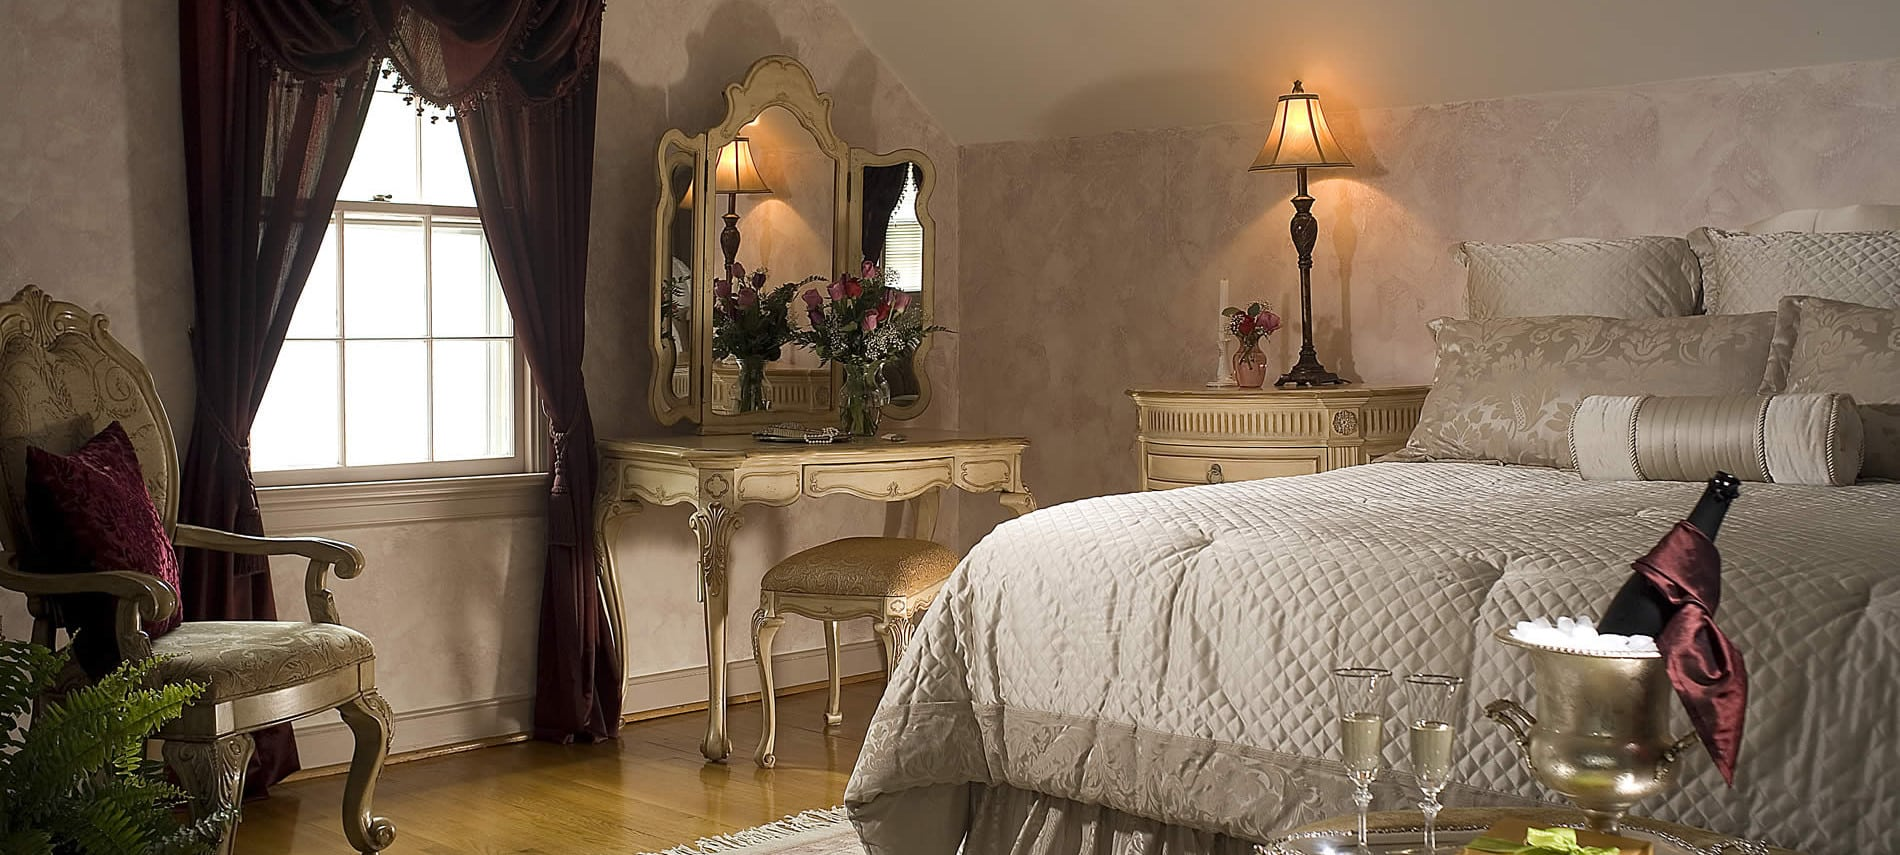 king bed with vanity and night stand with lighted lamp on top